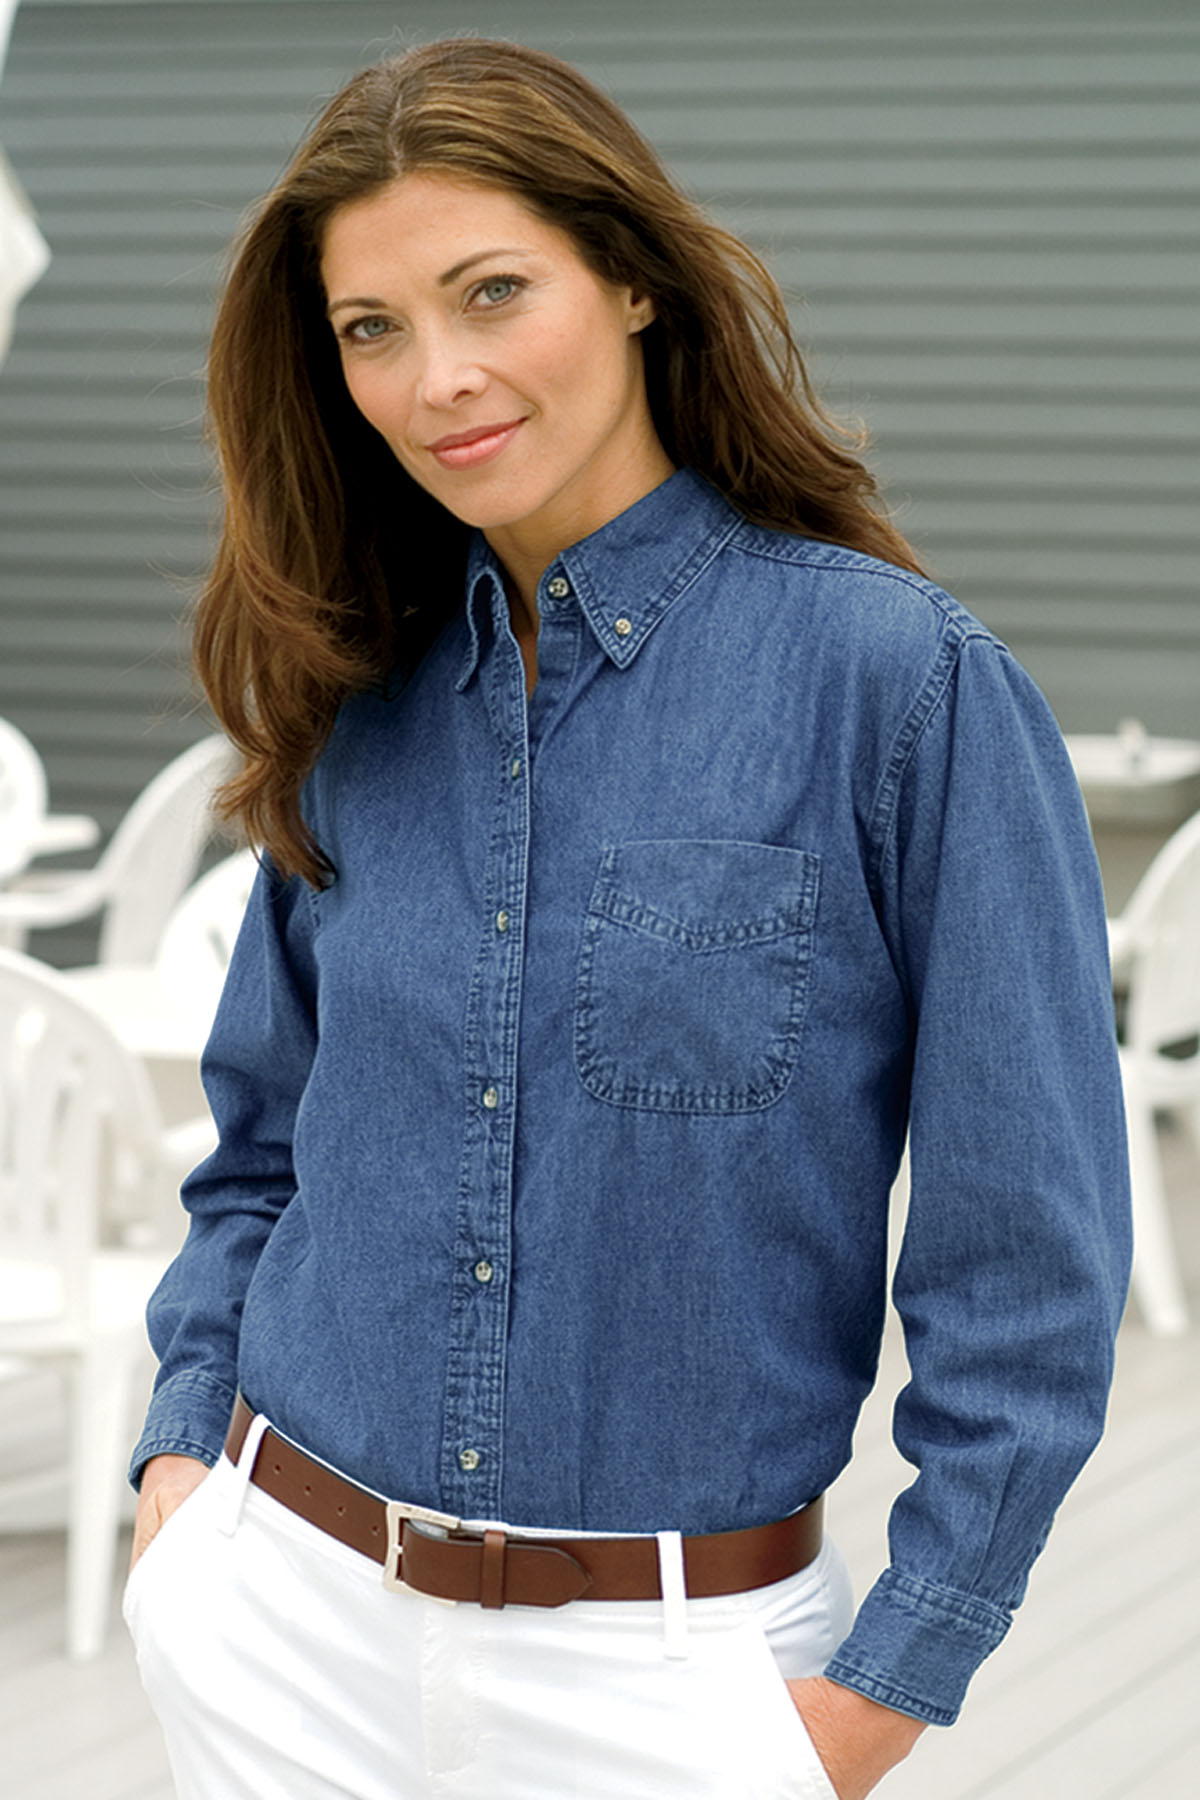 Vantage 1976 - Women's Woodbridge Denim Shirt